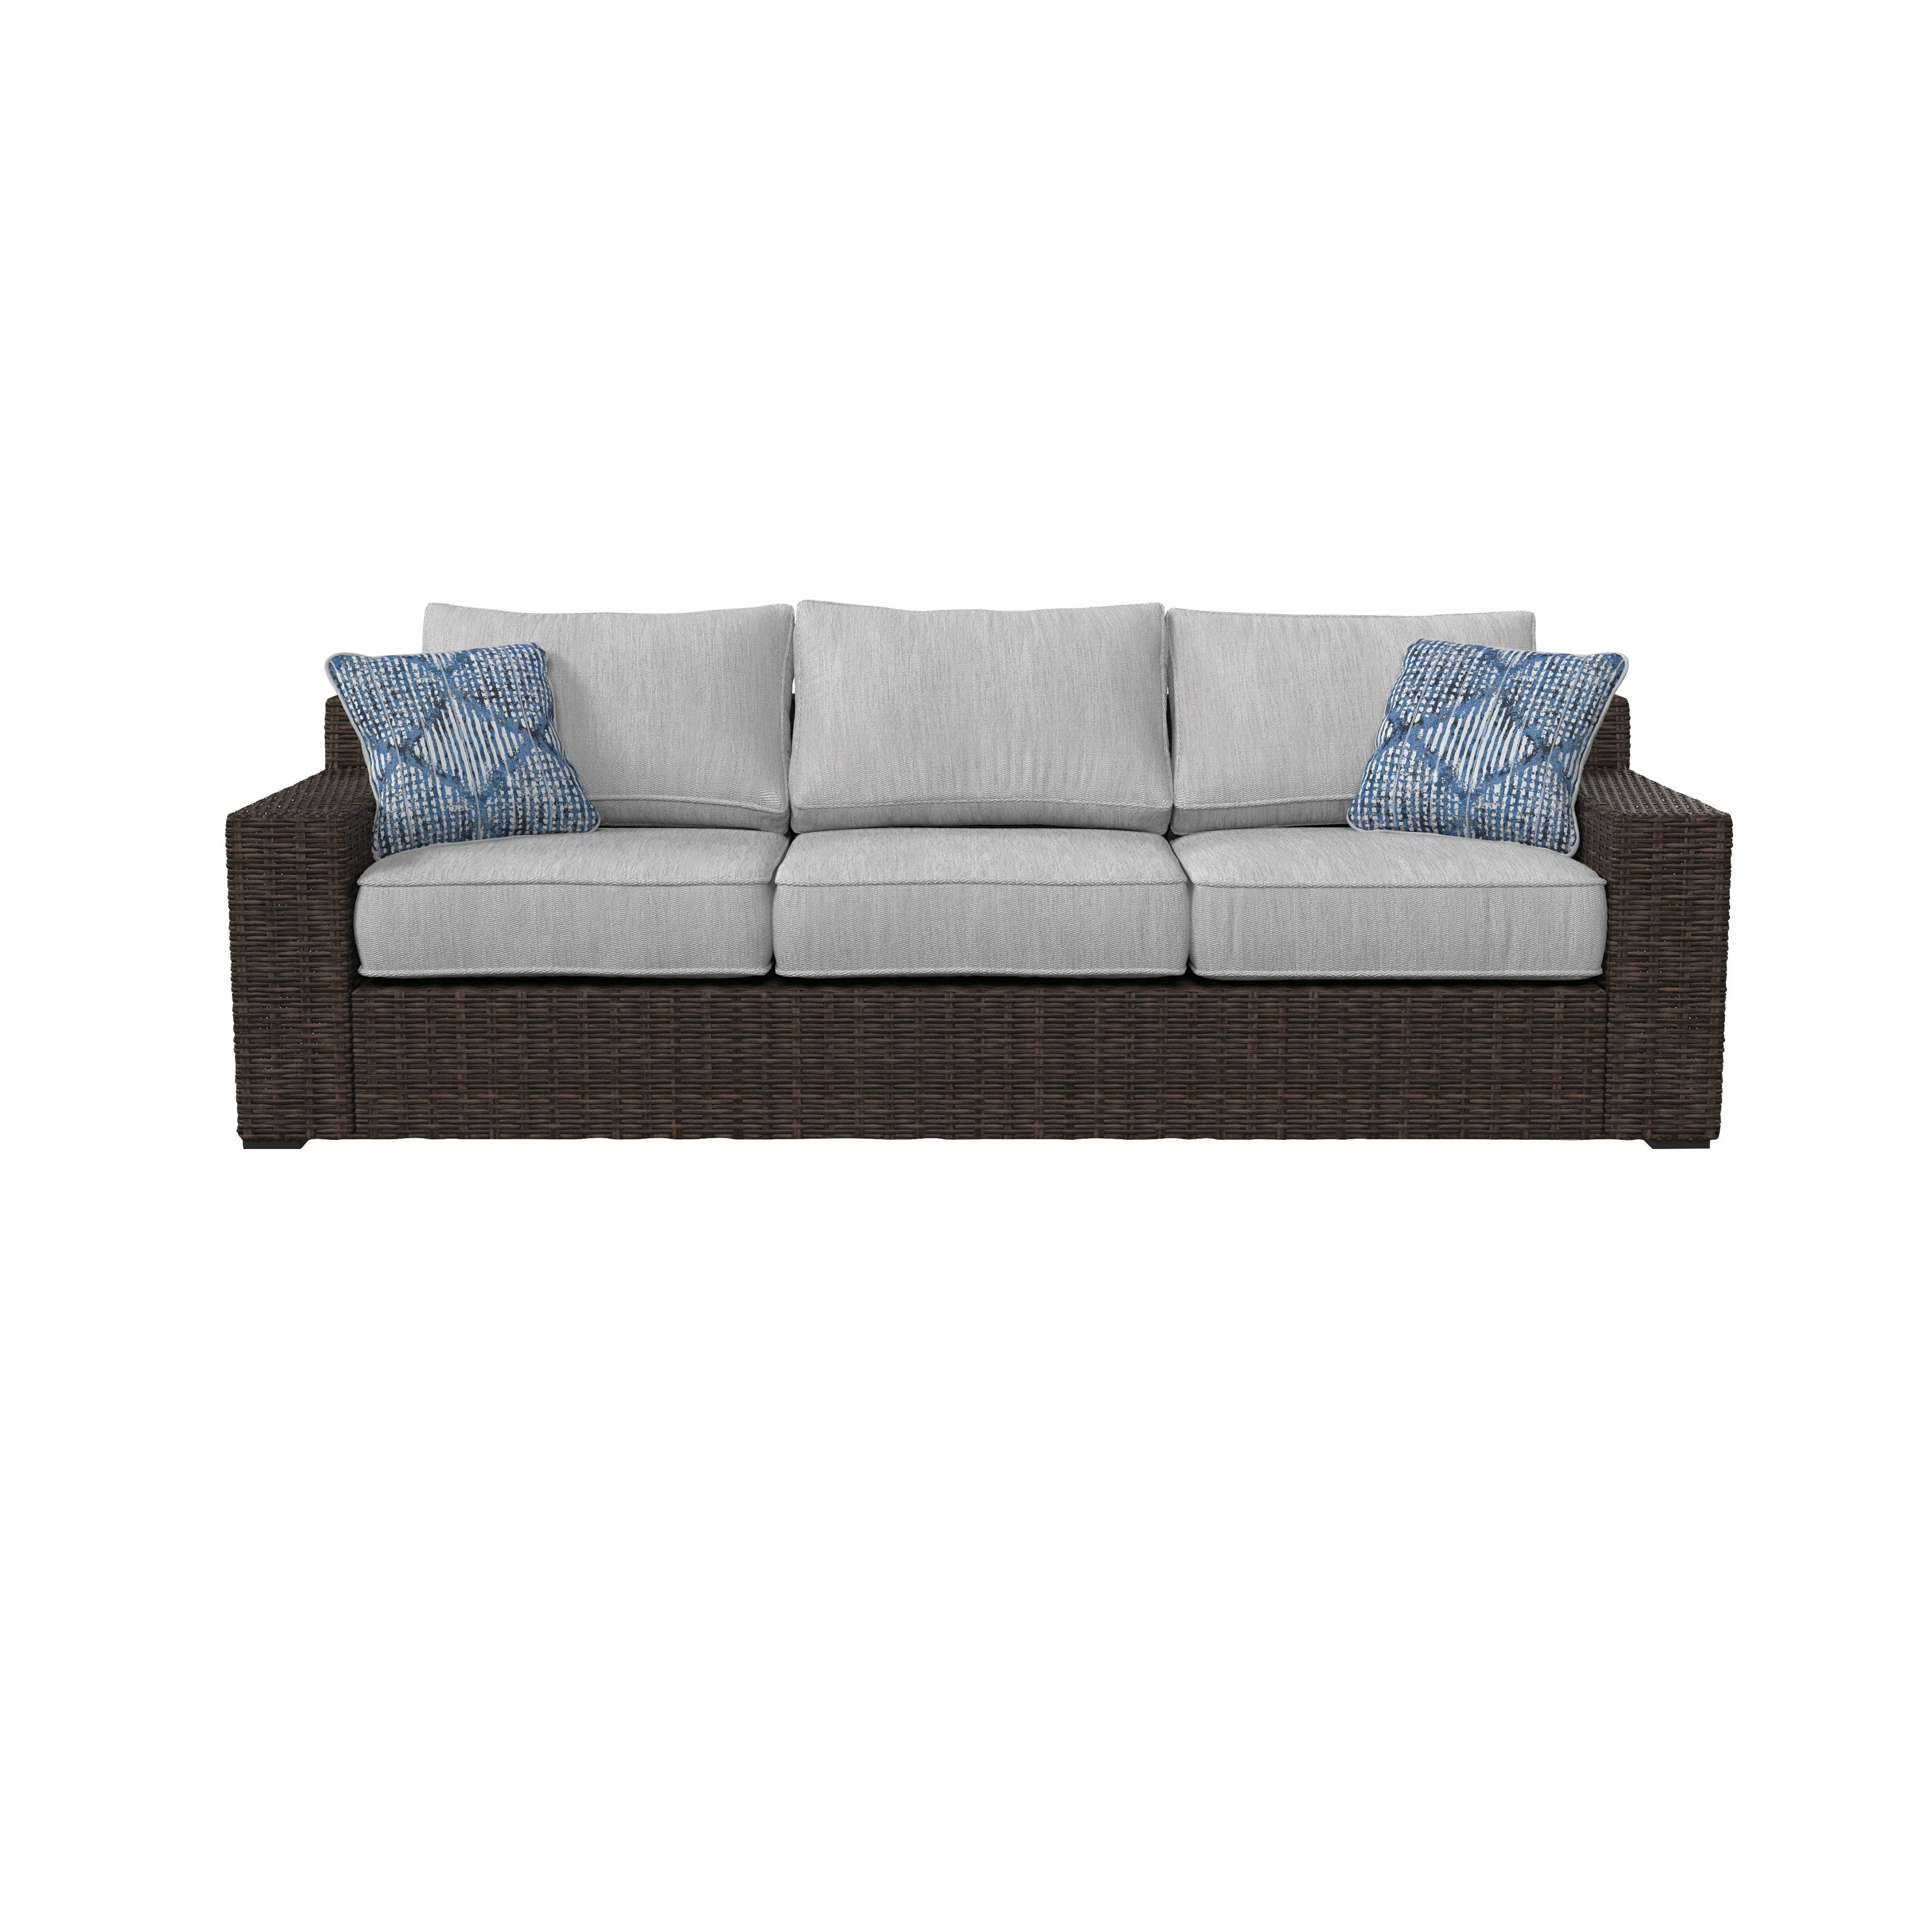 Famous Oreland Patio Sofa With Cushions Intended For Mcmanis Patio Sofas With Cushion (View 4 of 20)